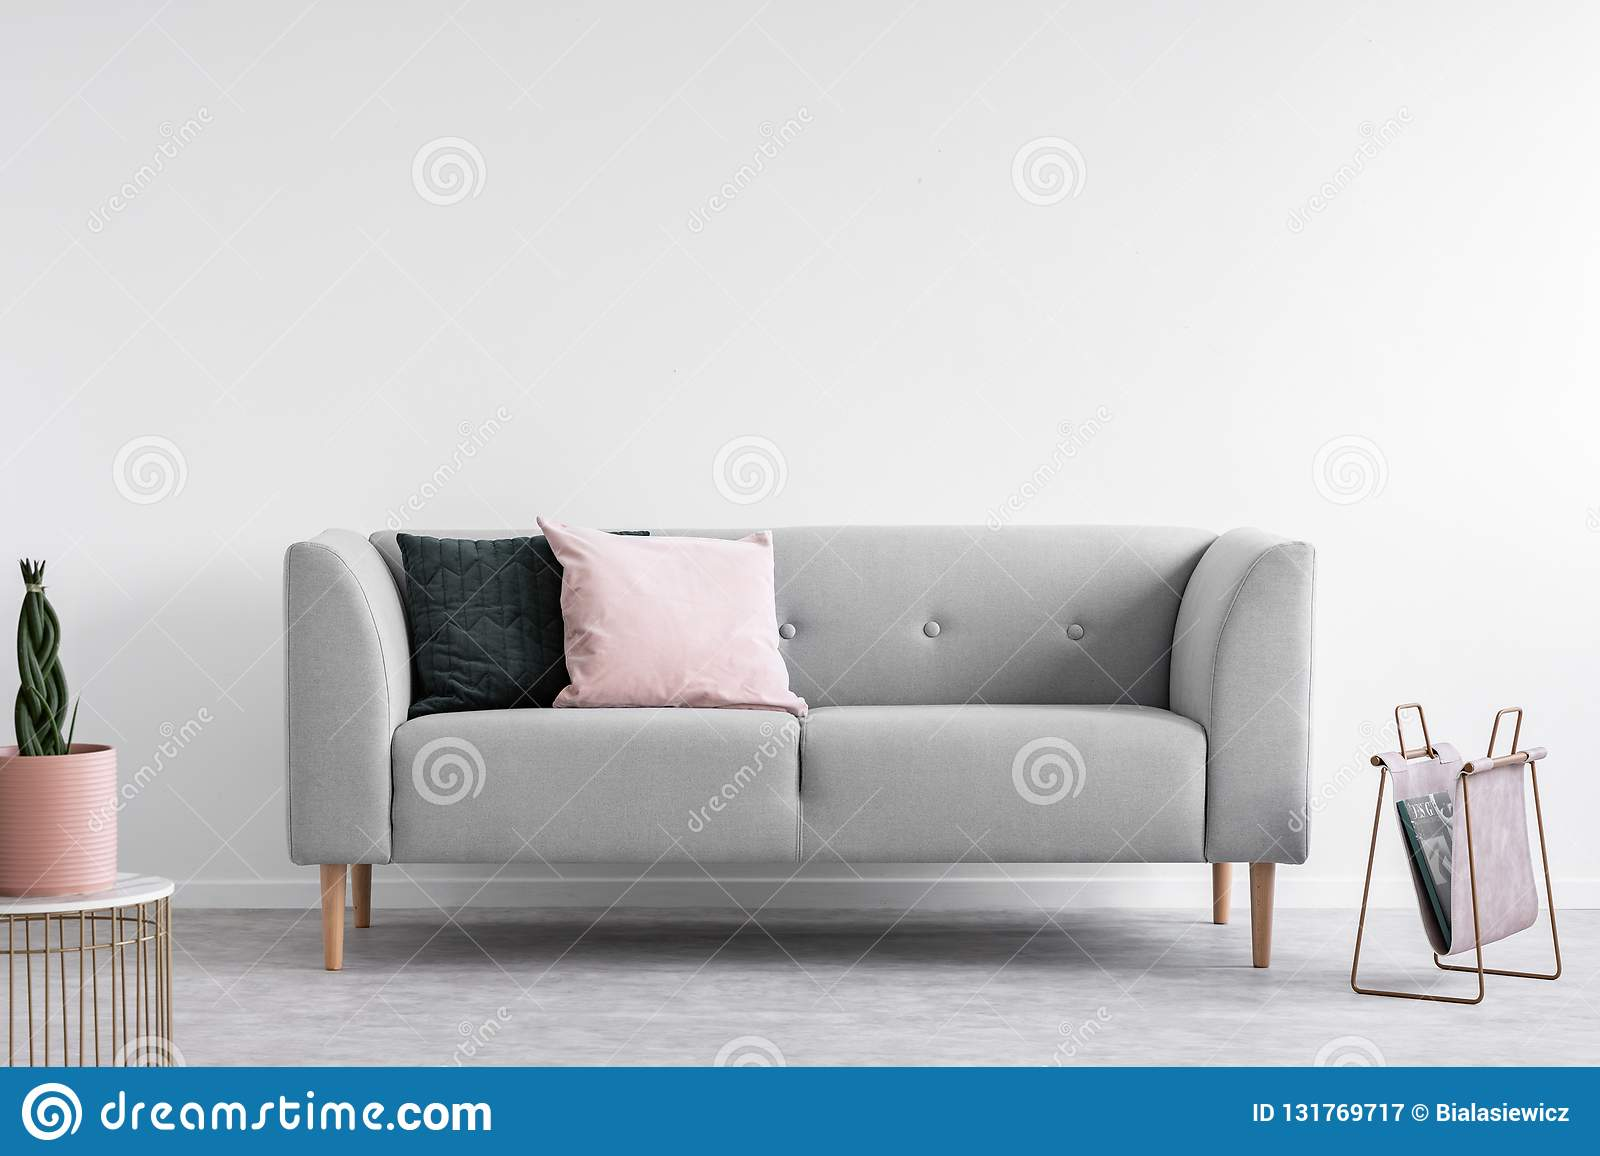 minimal sofa design sleeper under 200 scandinavian with grey real photo copy comfortable space on the wall